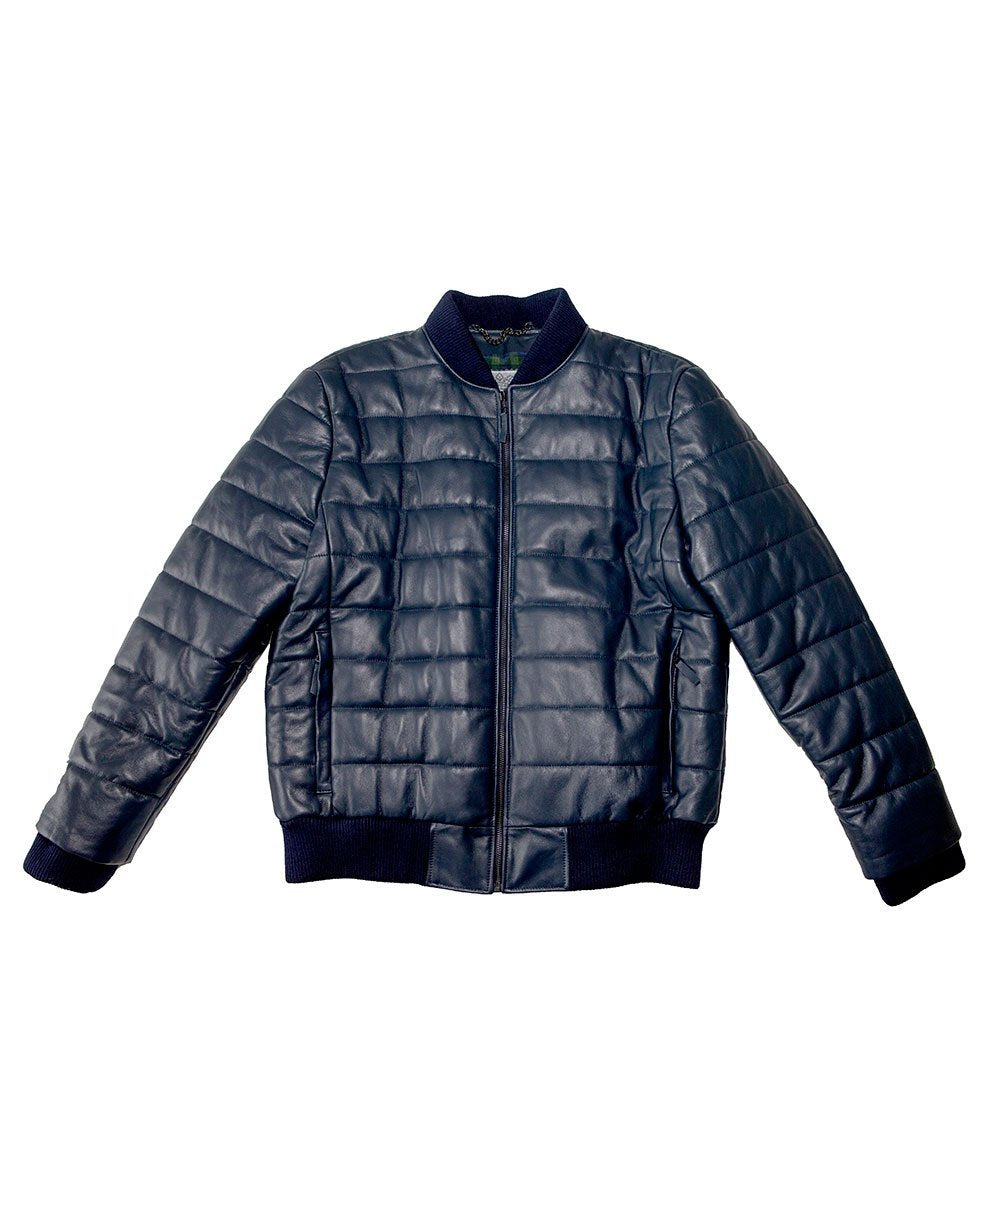 Goodwood Gsr Sports Racing Navy Italian Leather Quilted Gordon Tartan Lined Jacket